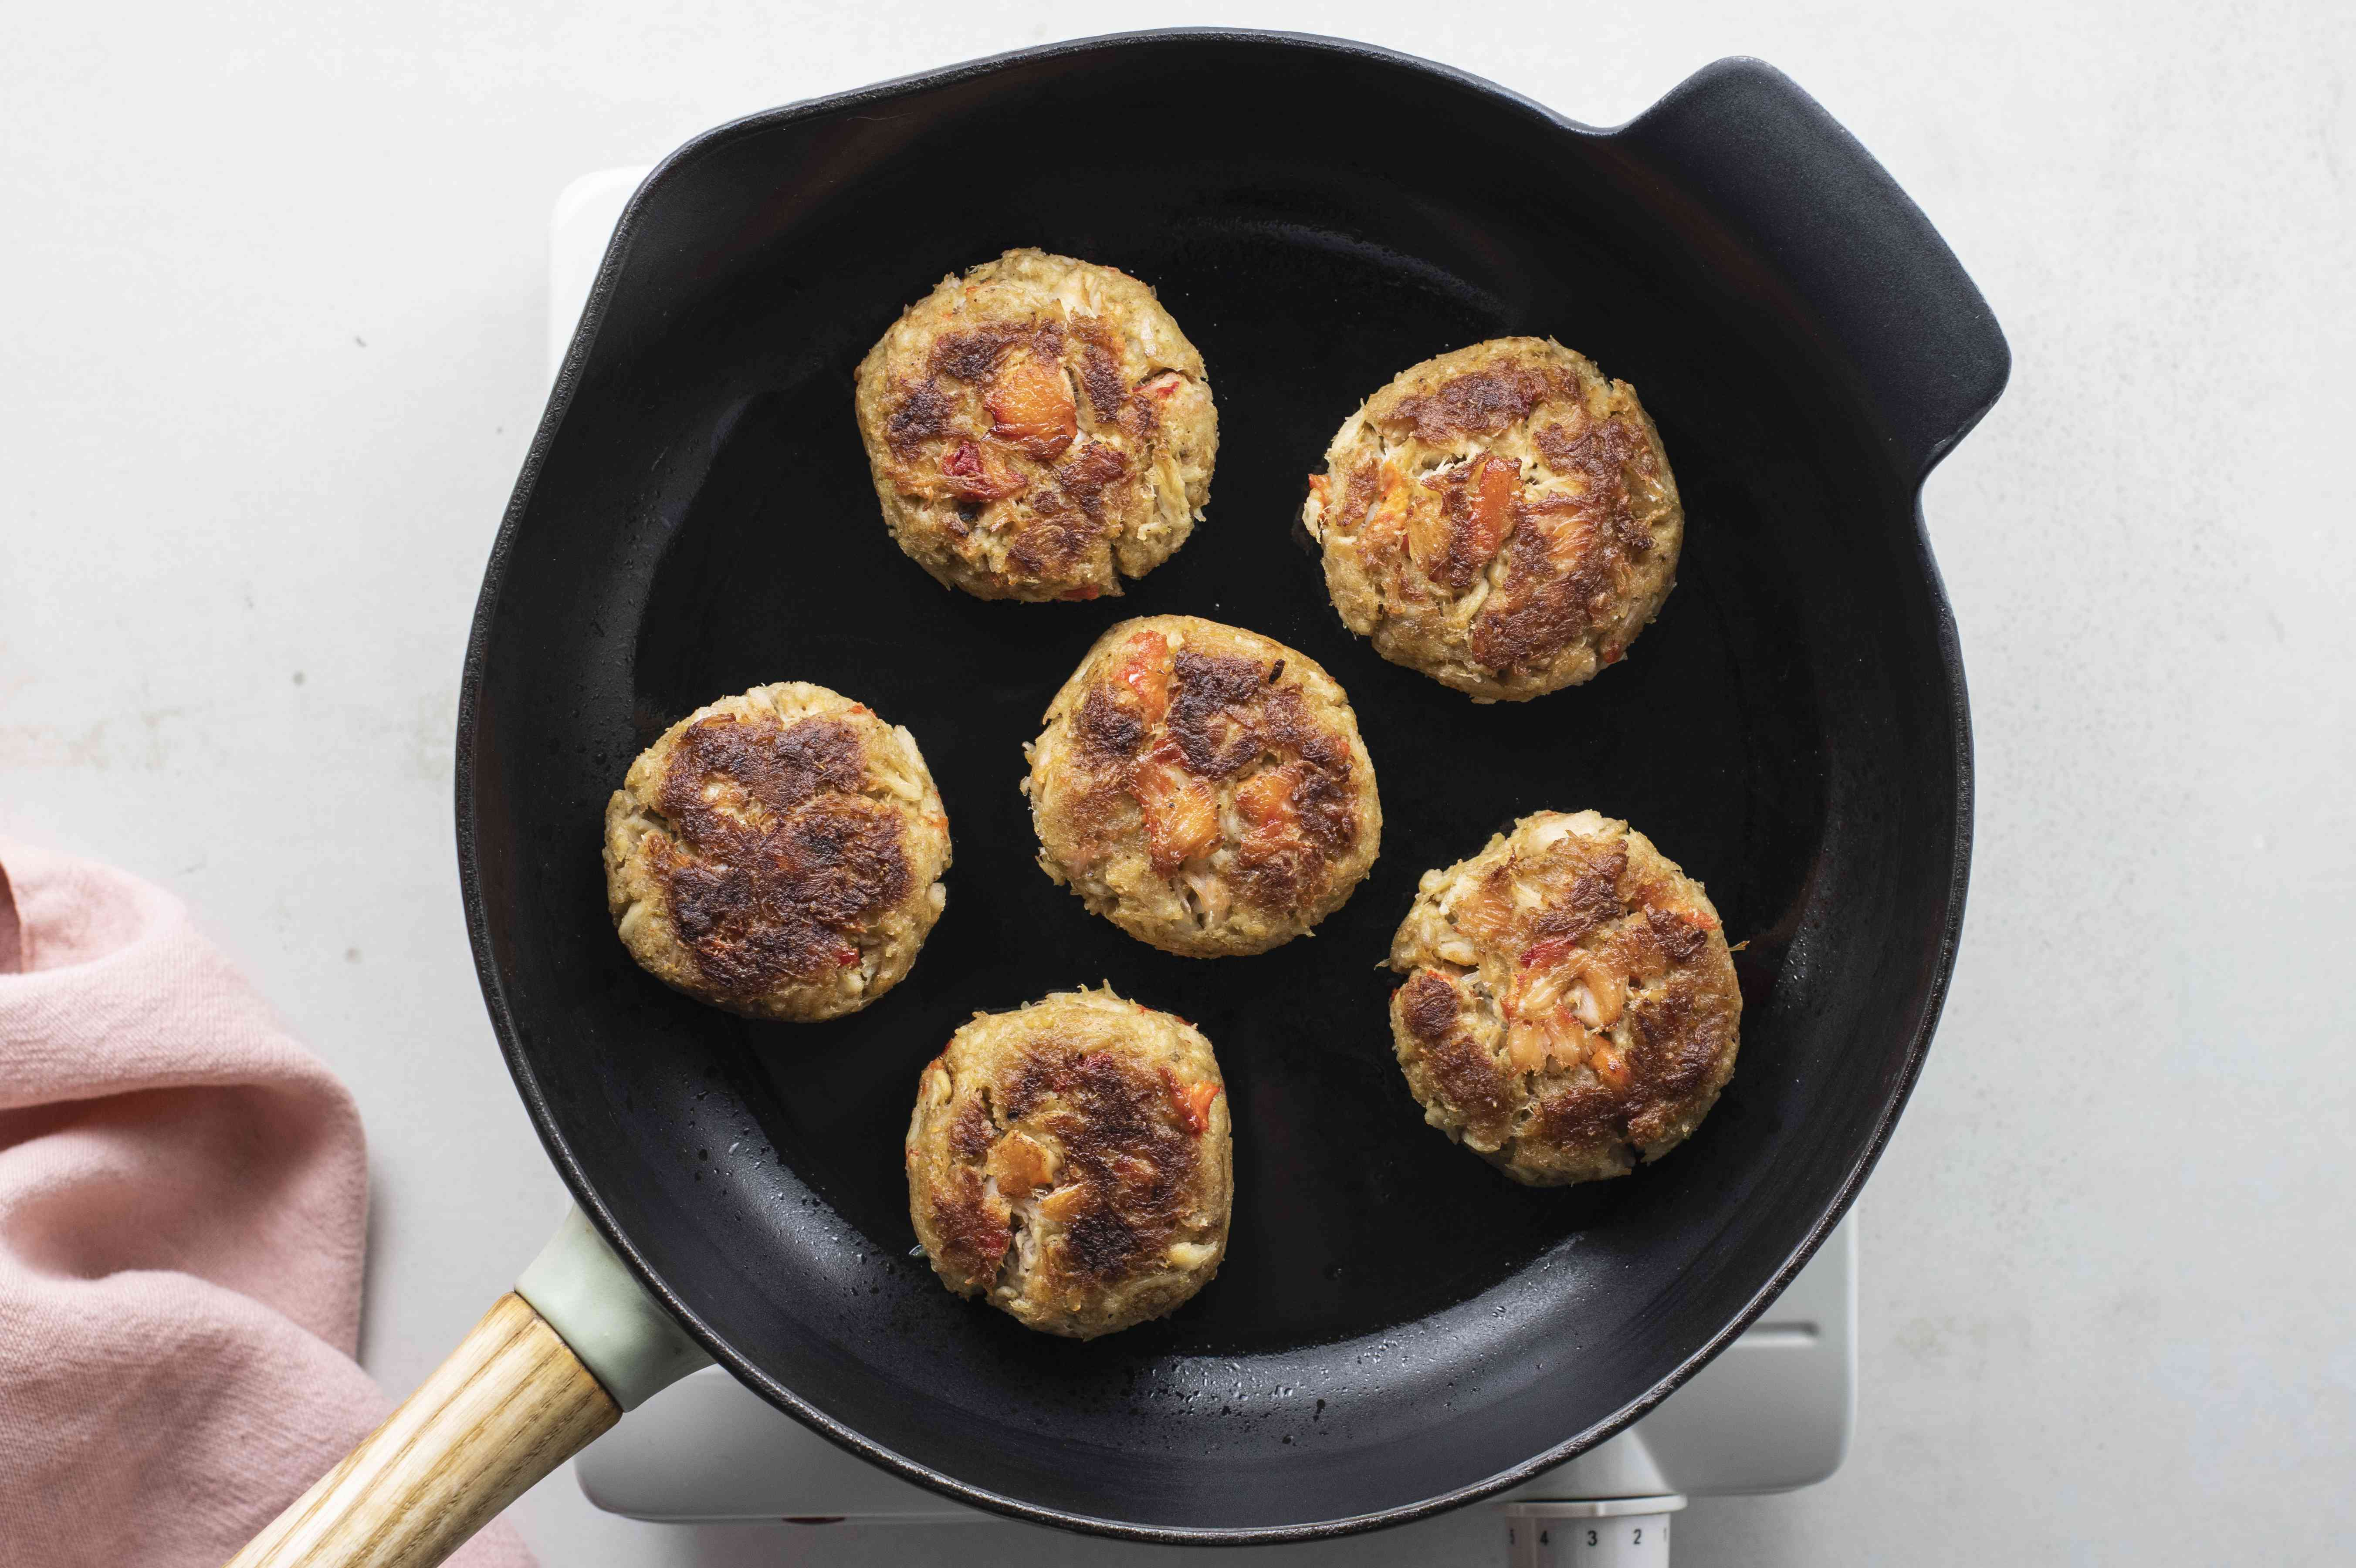 Cooked crab cakes in pan